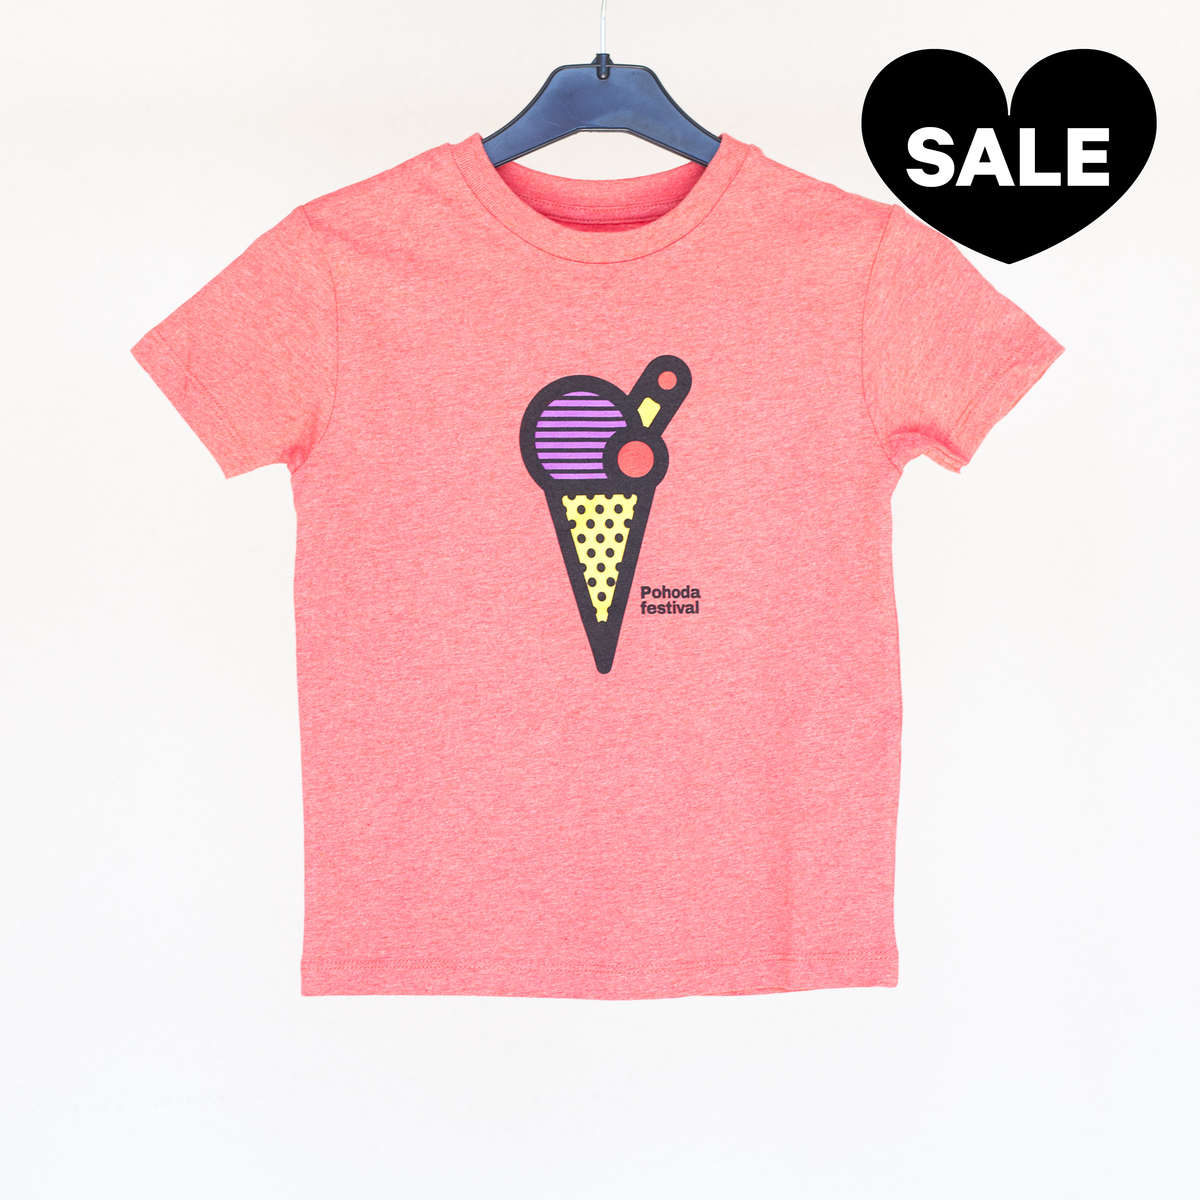 507260c78 Collection 2017 - Pink Kids T-shirt Ice Cream | Pohoda Festival